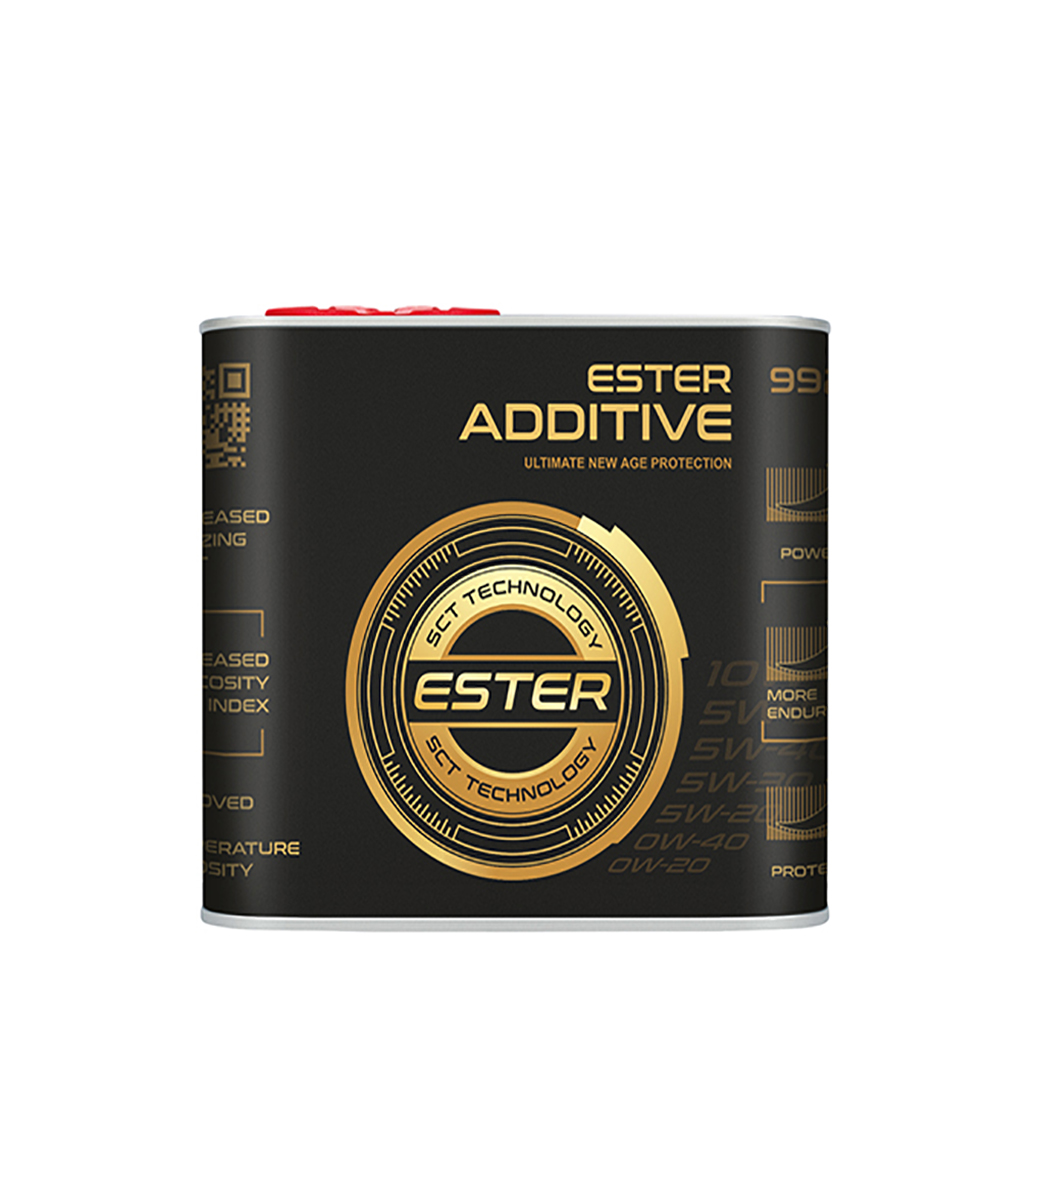 Ester Additive